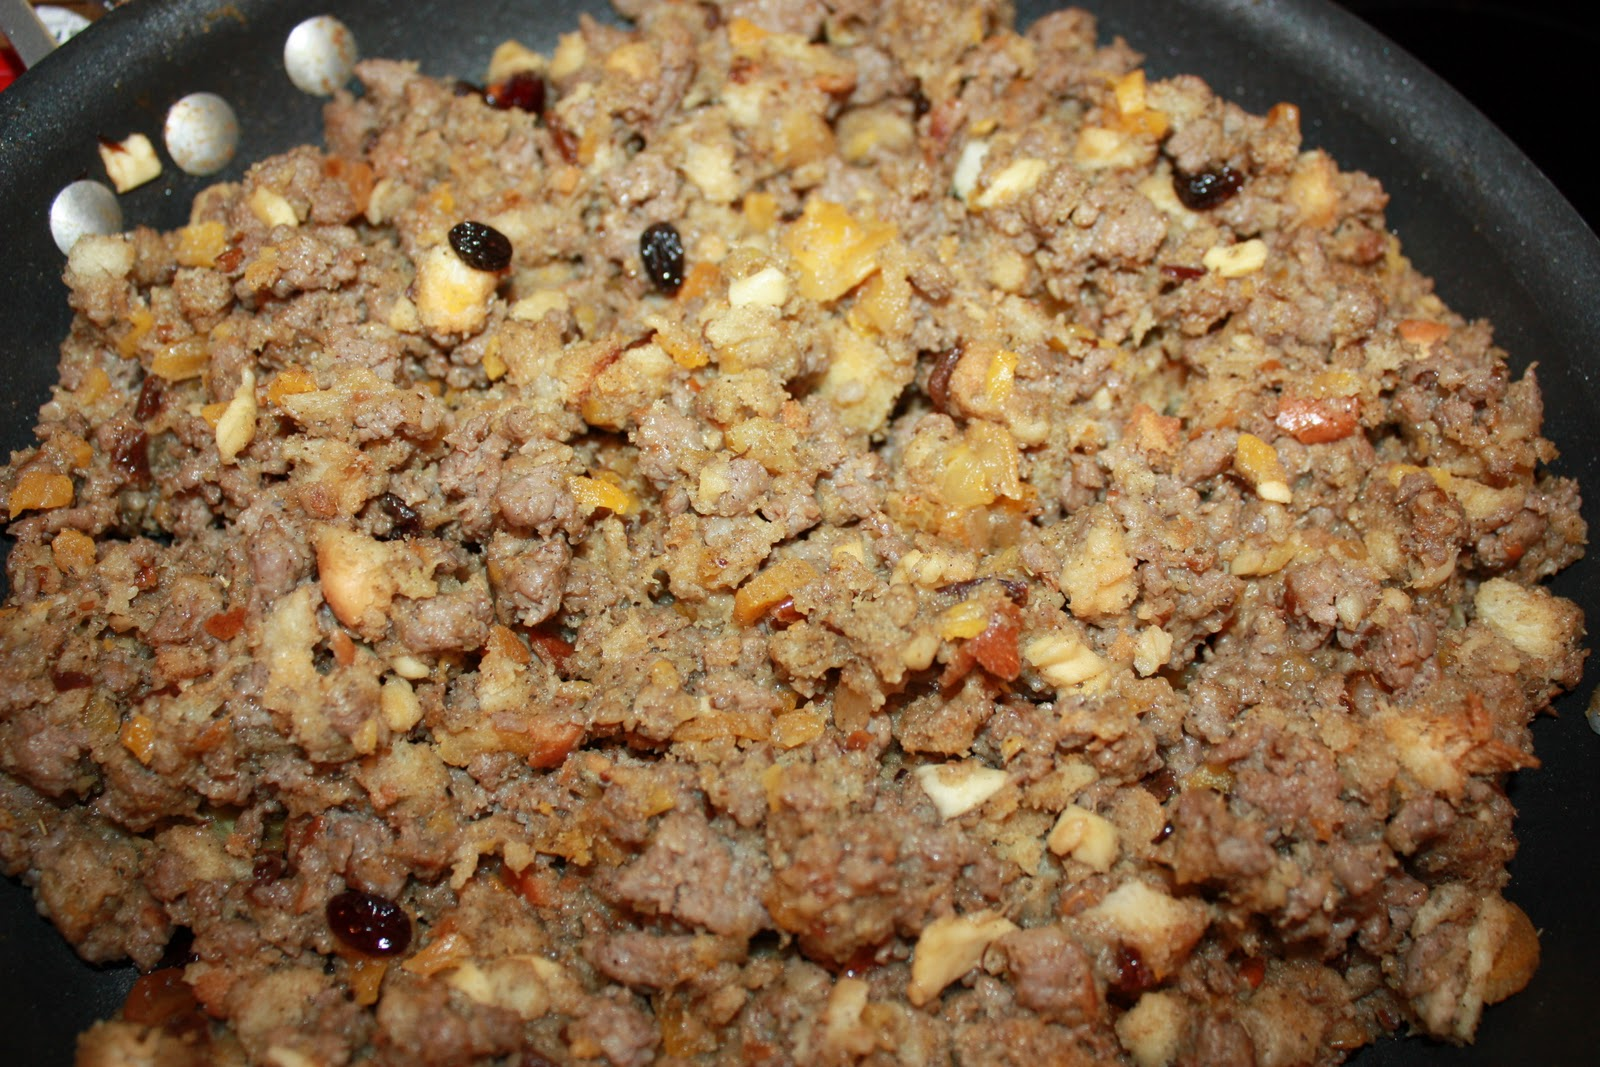 The Farmhouse Foodie: Sweet Sausage and Dried Fruit Stuffing